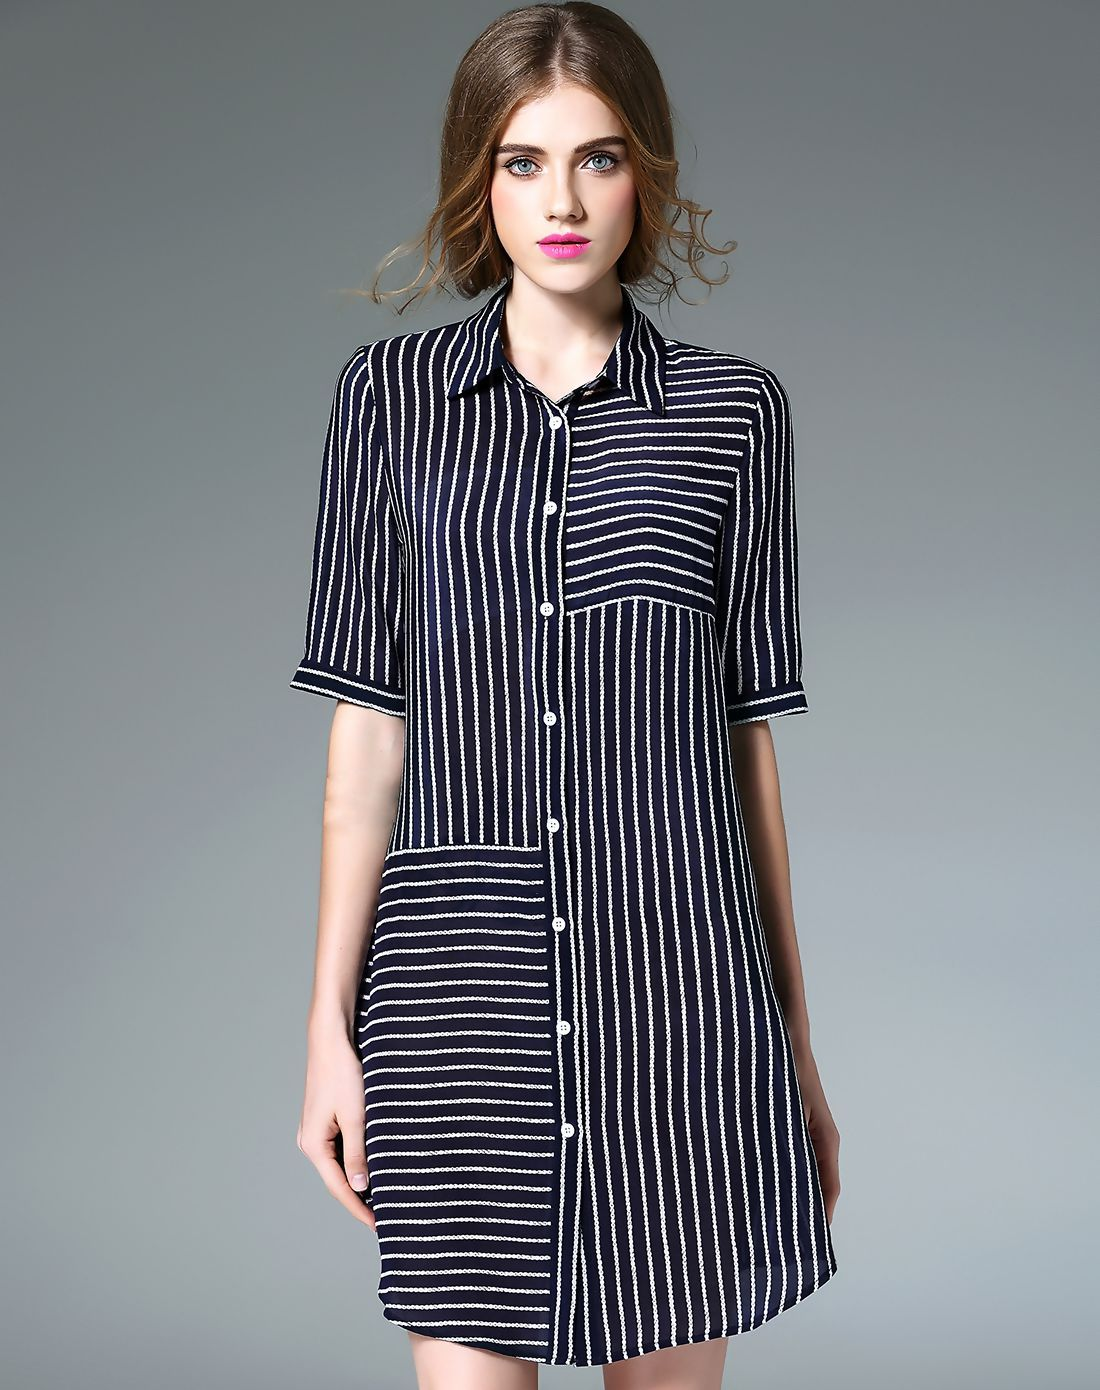 d9e2f759c67cf #AdoreWe #VIPme Shirt Dresses - Designer Fantiow Dark Blue Silk Striped  Mini Shirt Dress - AdoreWe.com